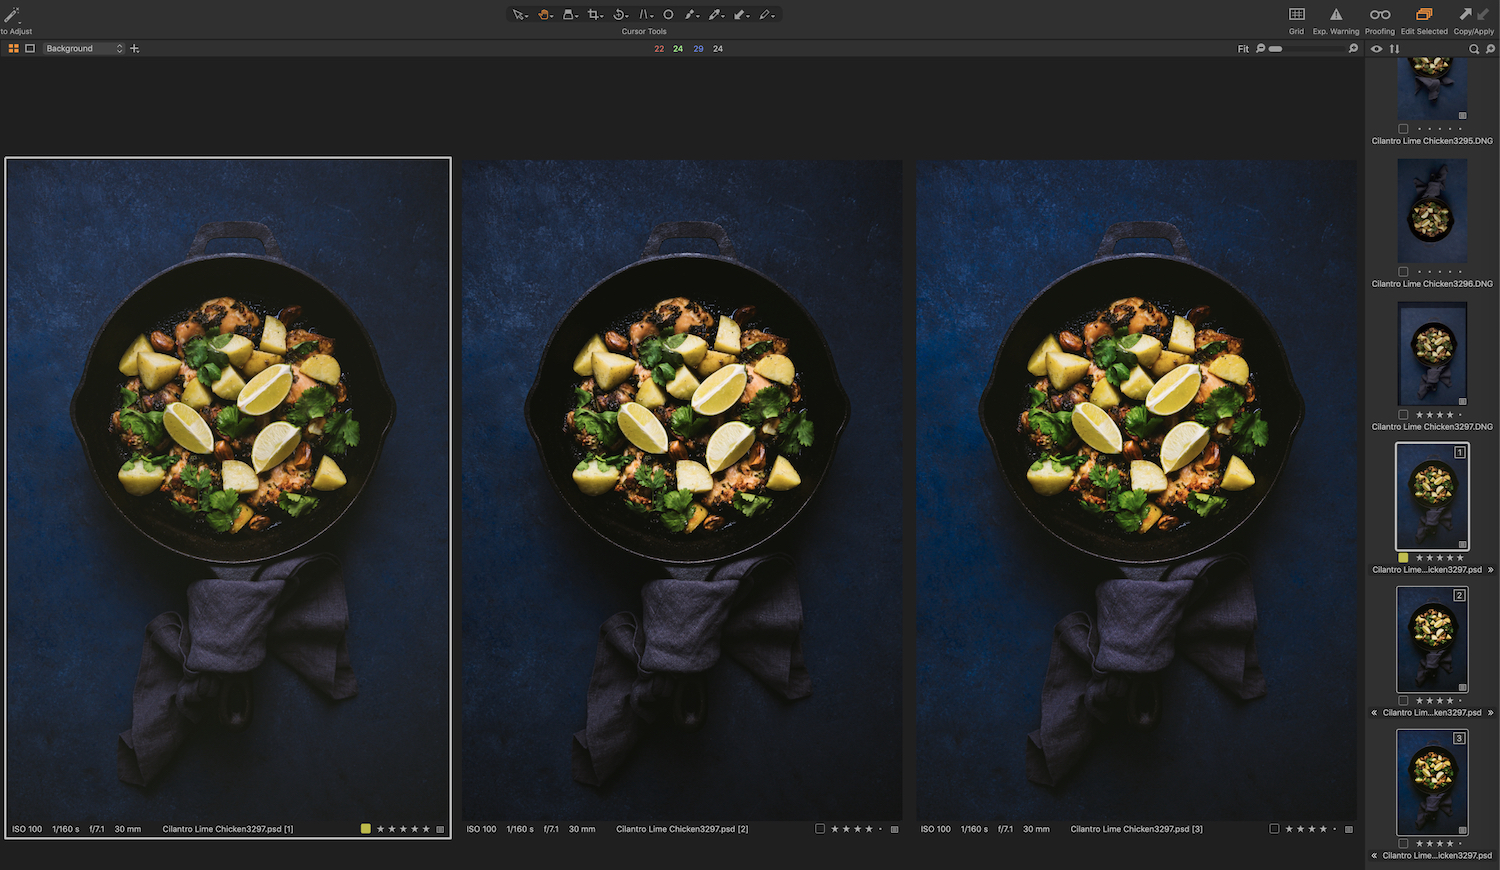 How to Use Photoshop and Capture One Pro Together